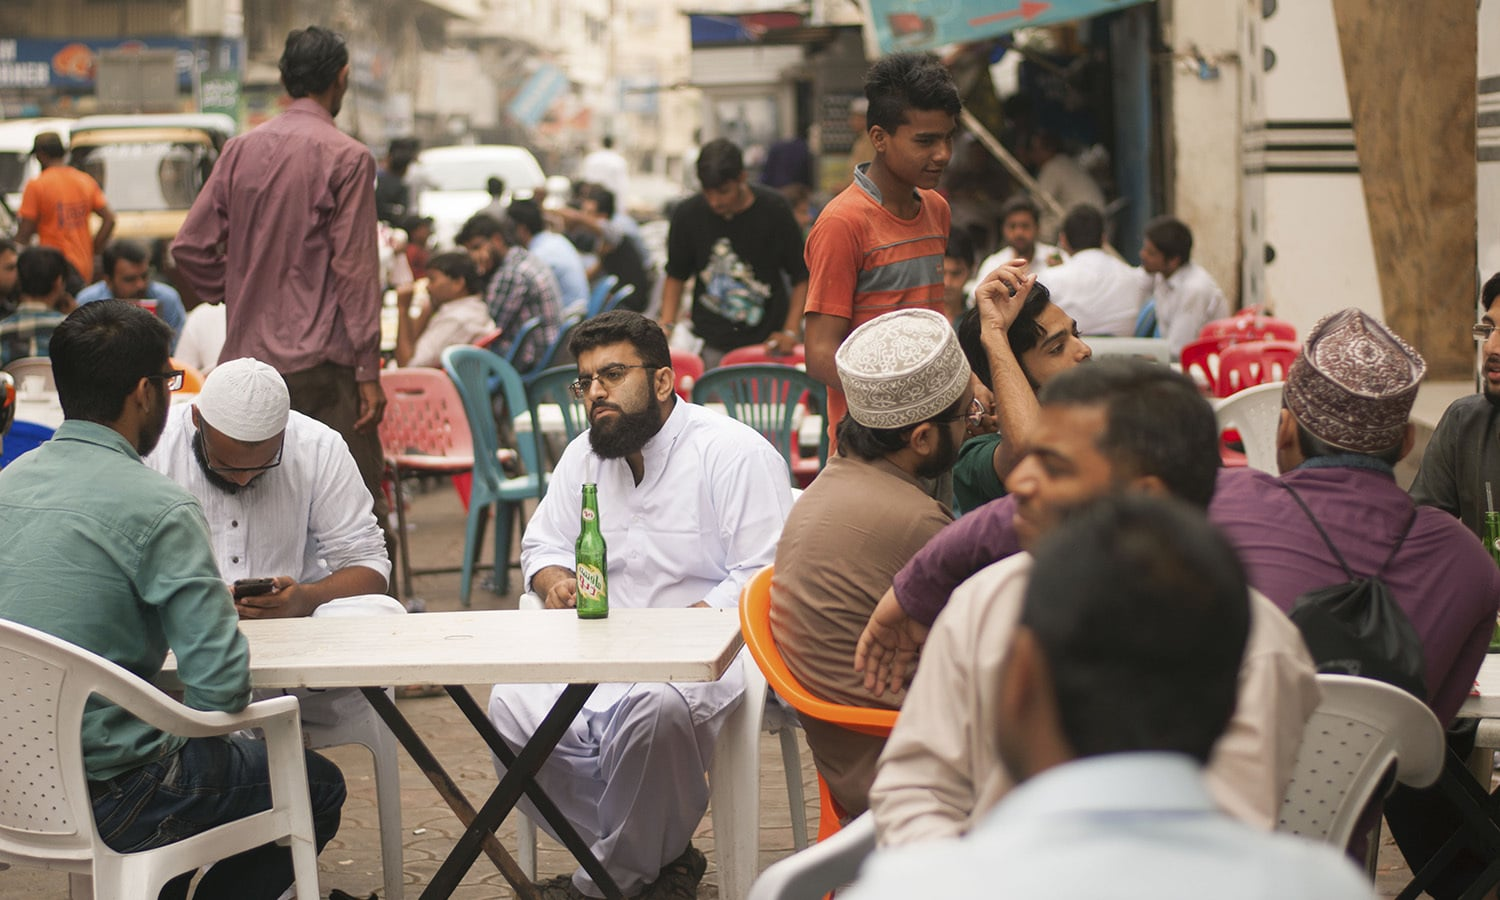 A typical dhaba scene has a nightmare male:female ratio. —Photo courtesy Girls at Dhabas